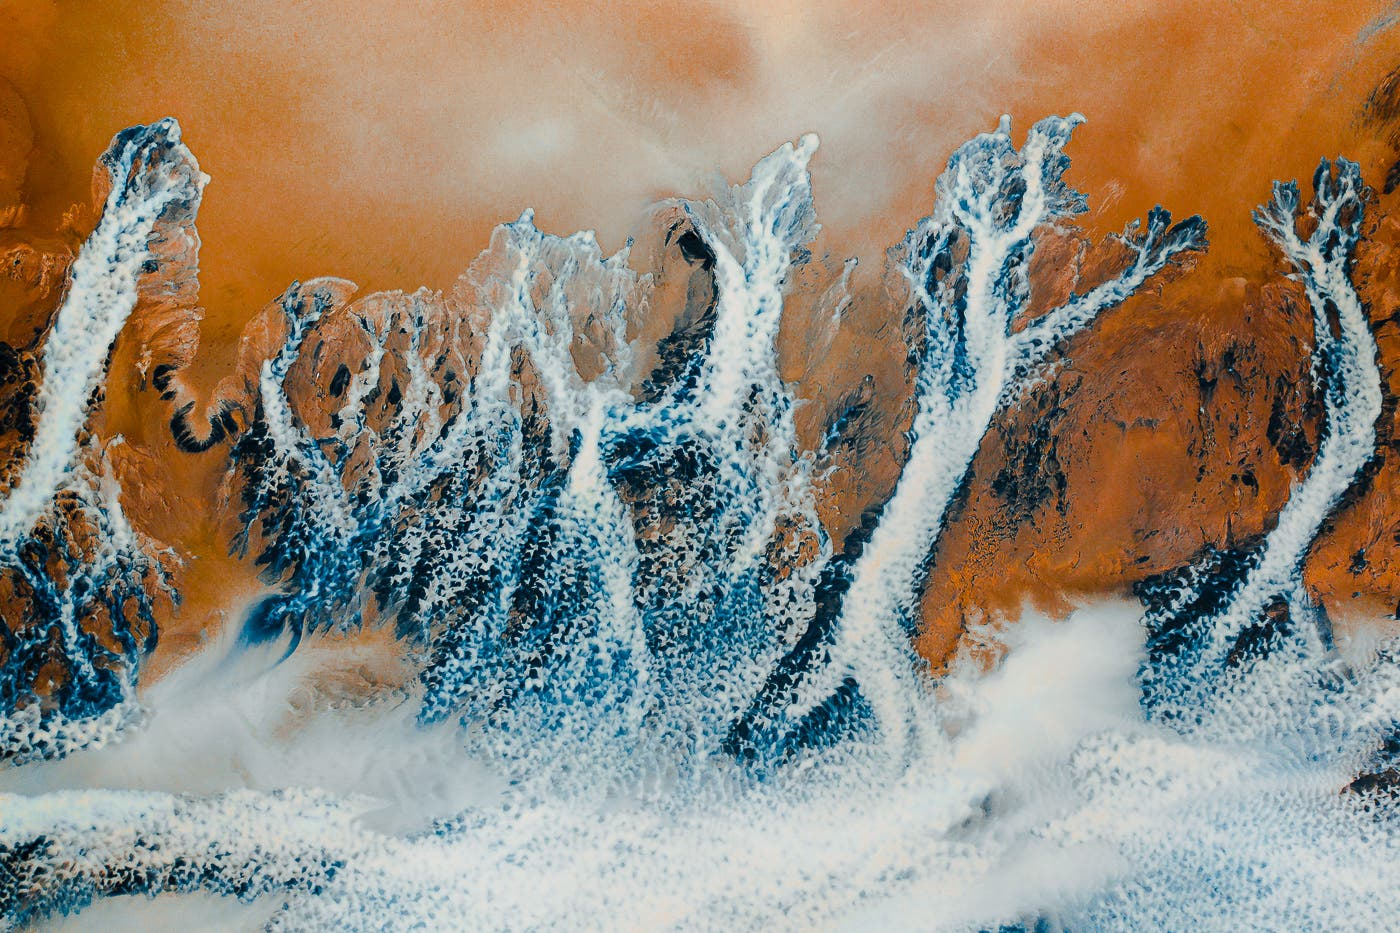 Gabor Nagy Reveals the Otherworldly Abstract Rivers of Iceland